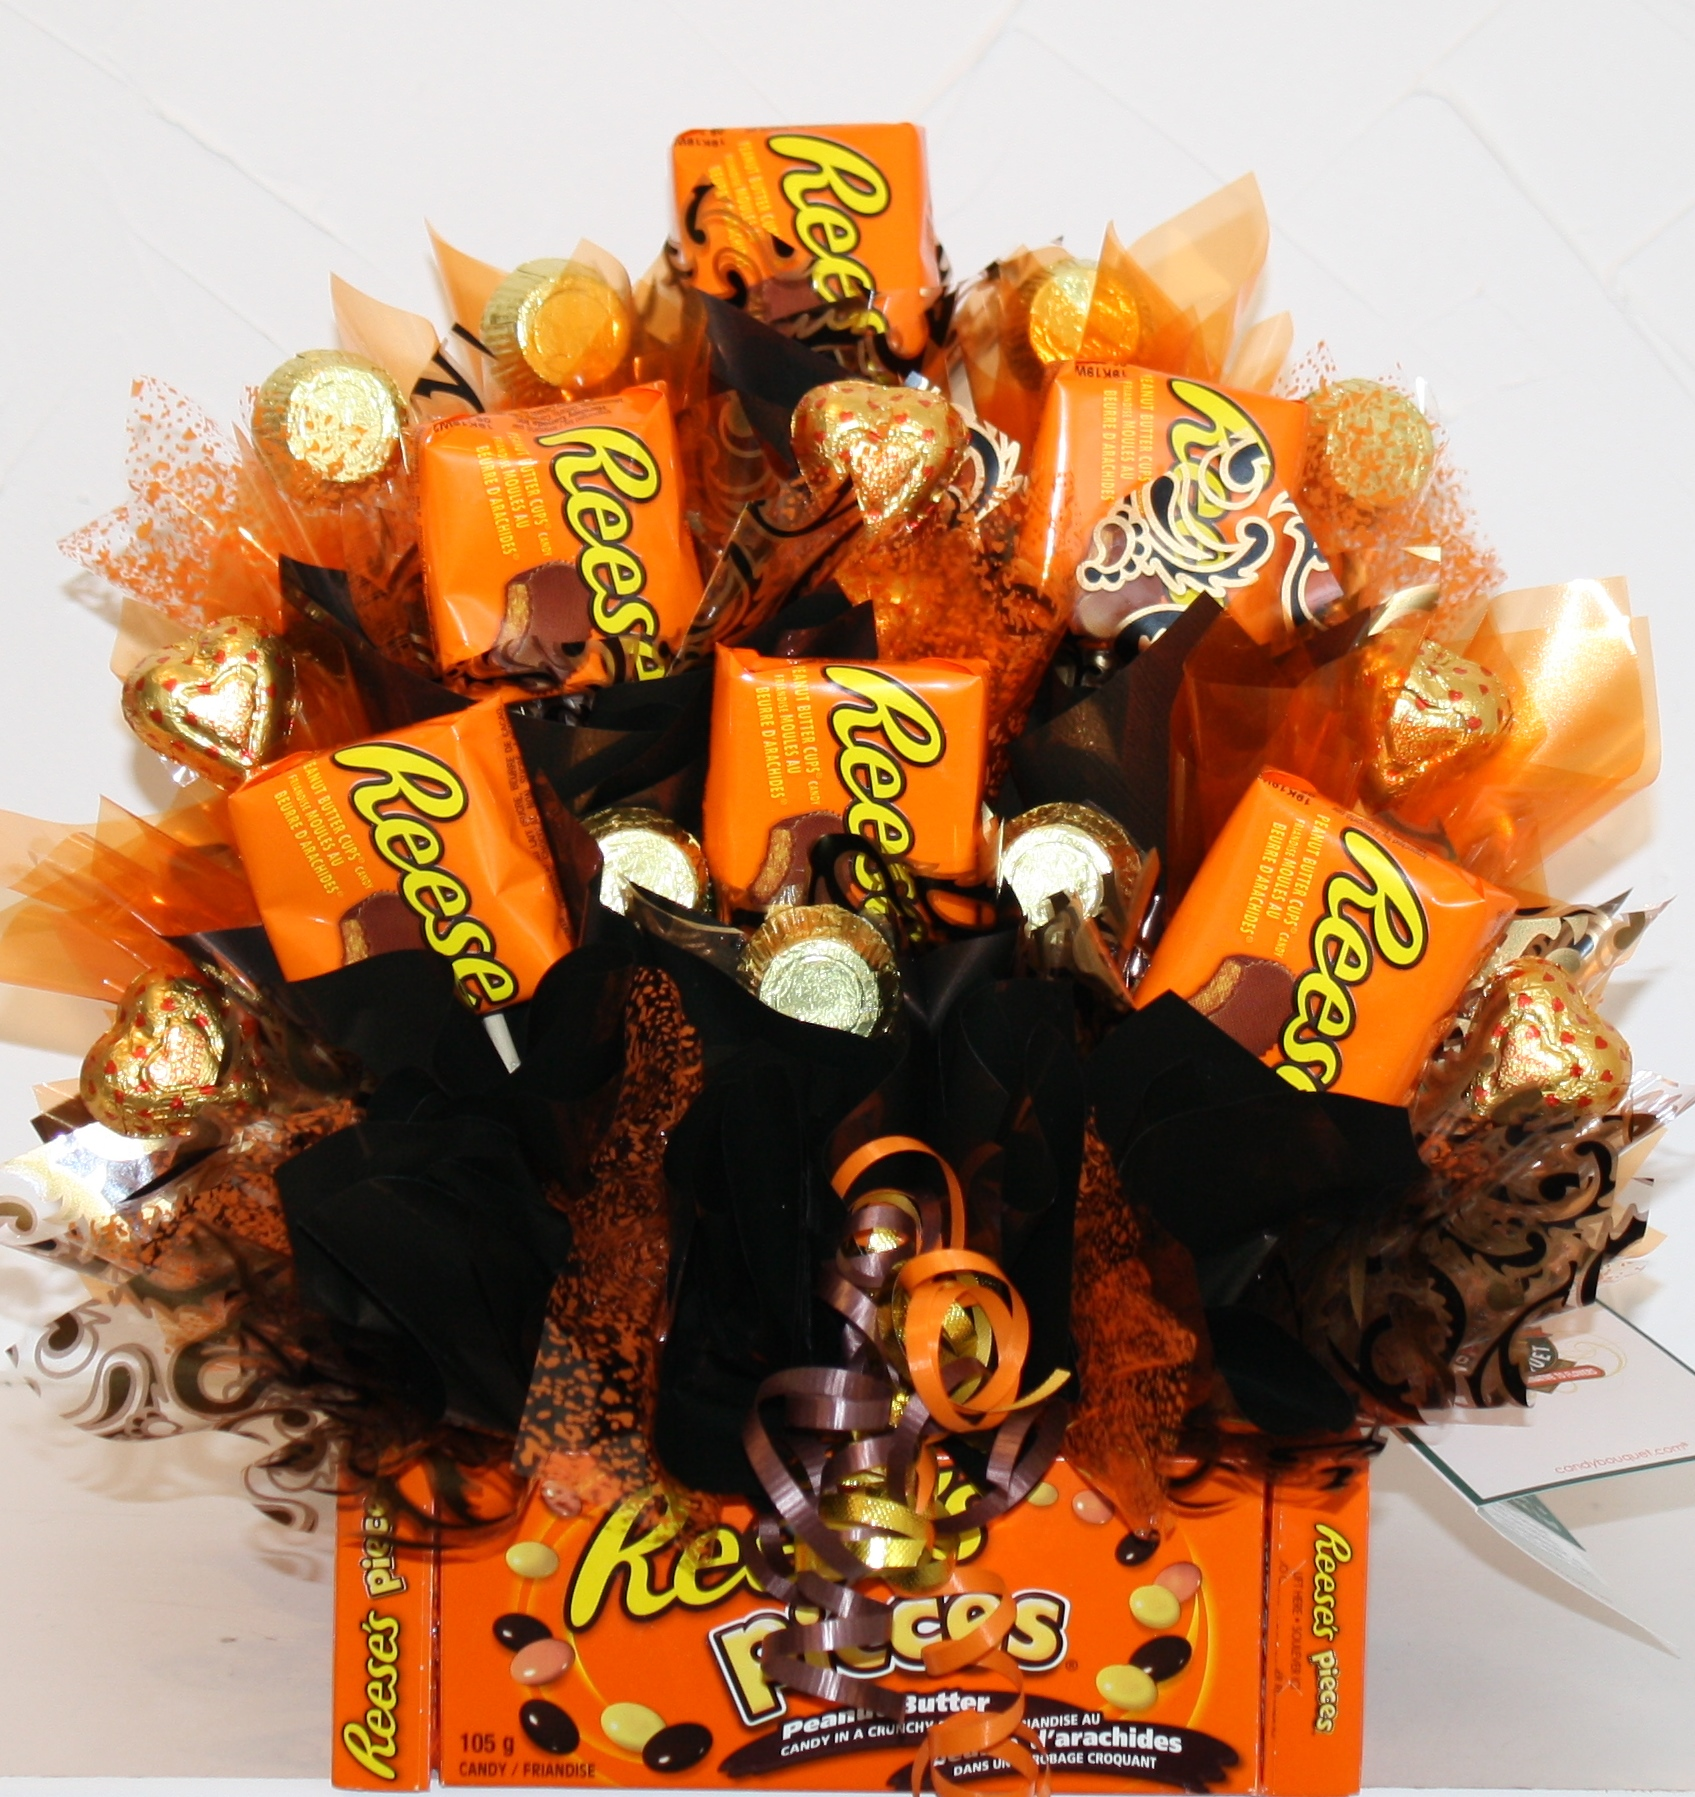 Reeces Pieces